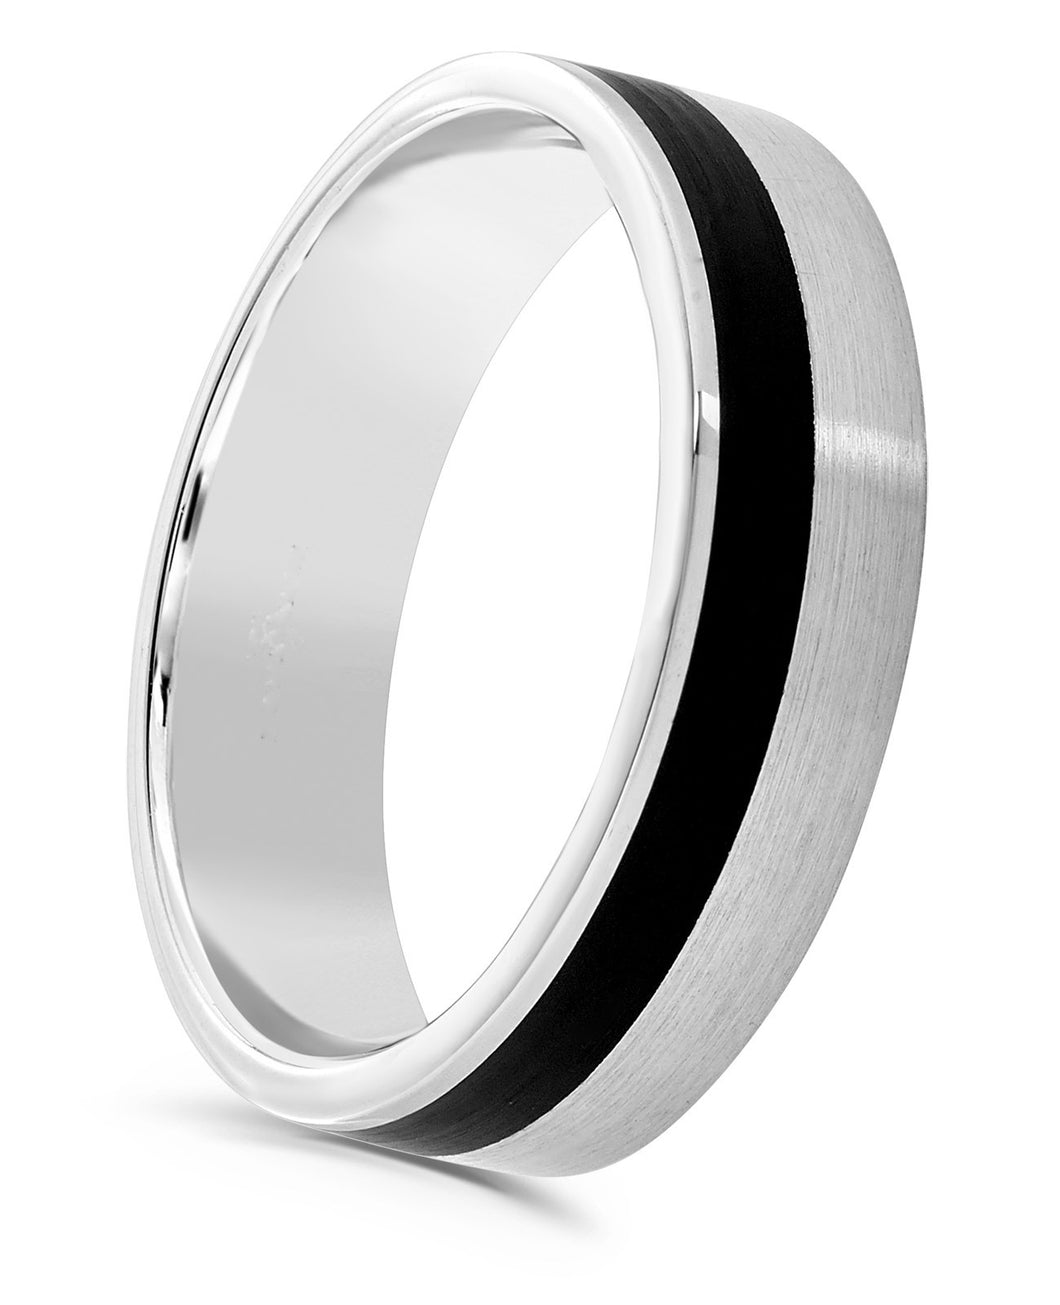 Matt black 1 row off set cerin and platinum flat top 4mm men's wedding ring.